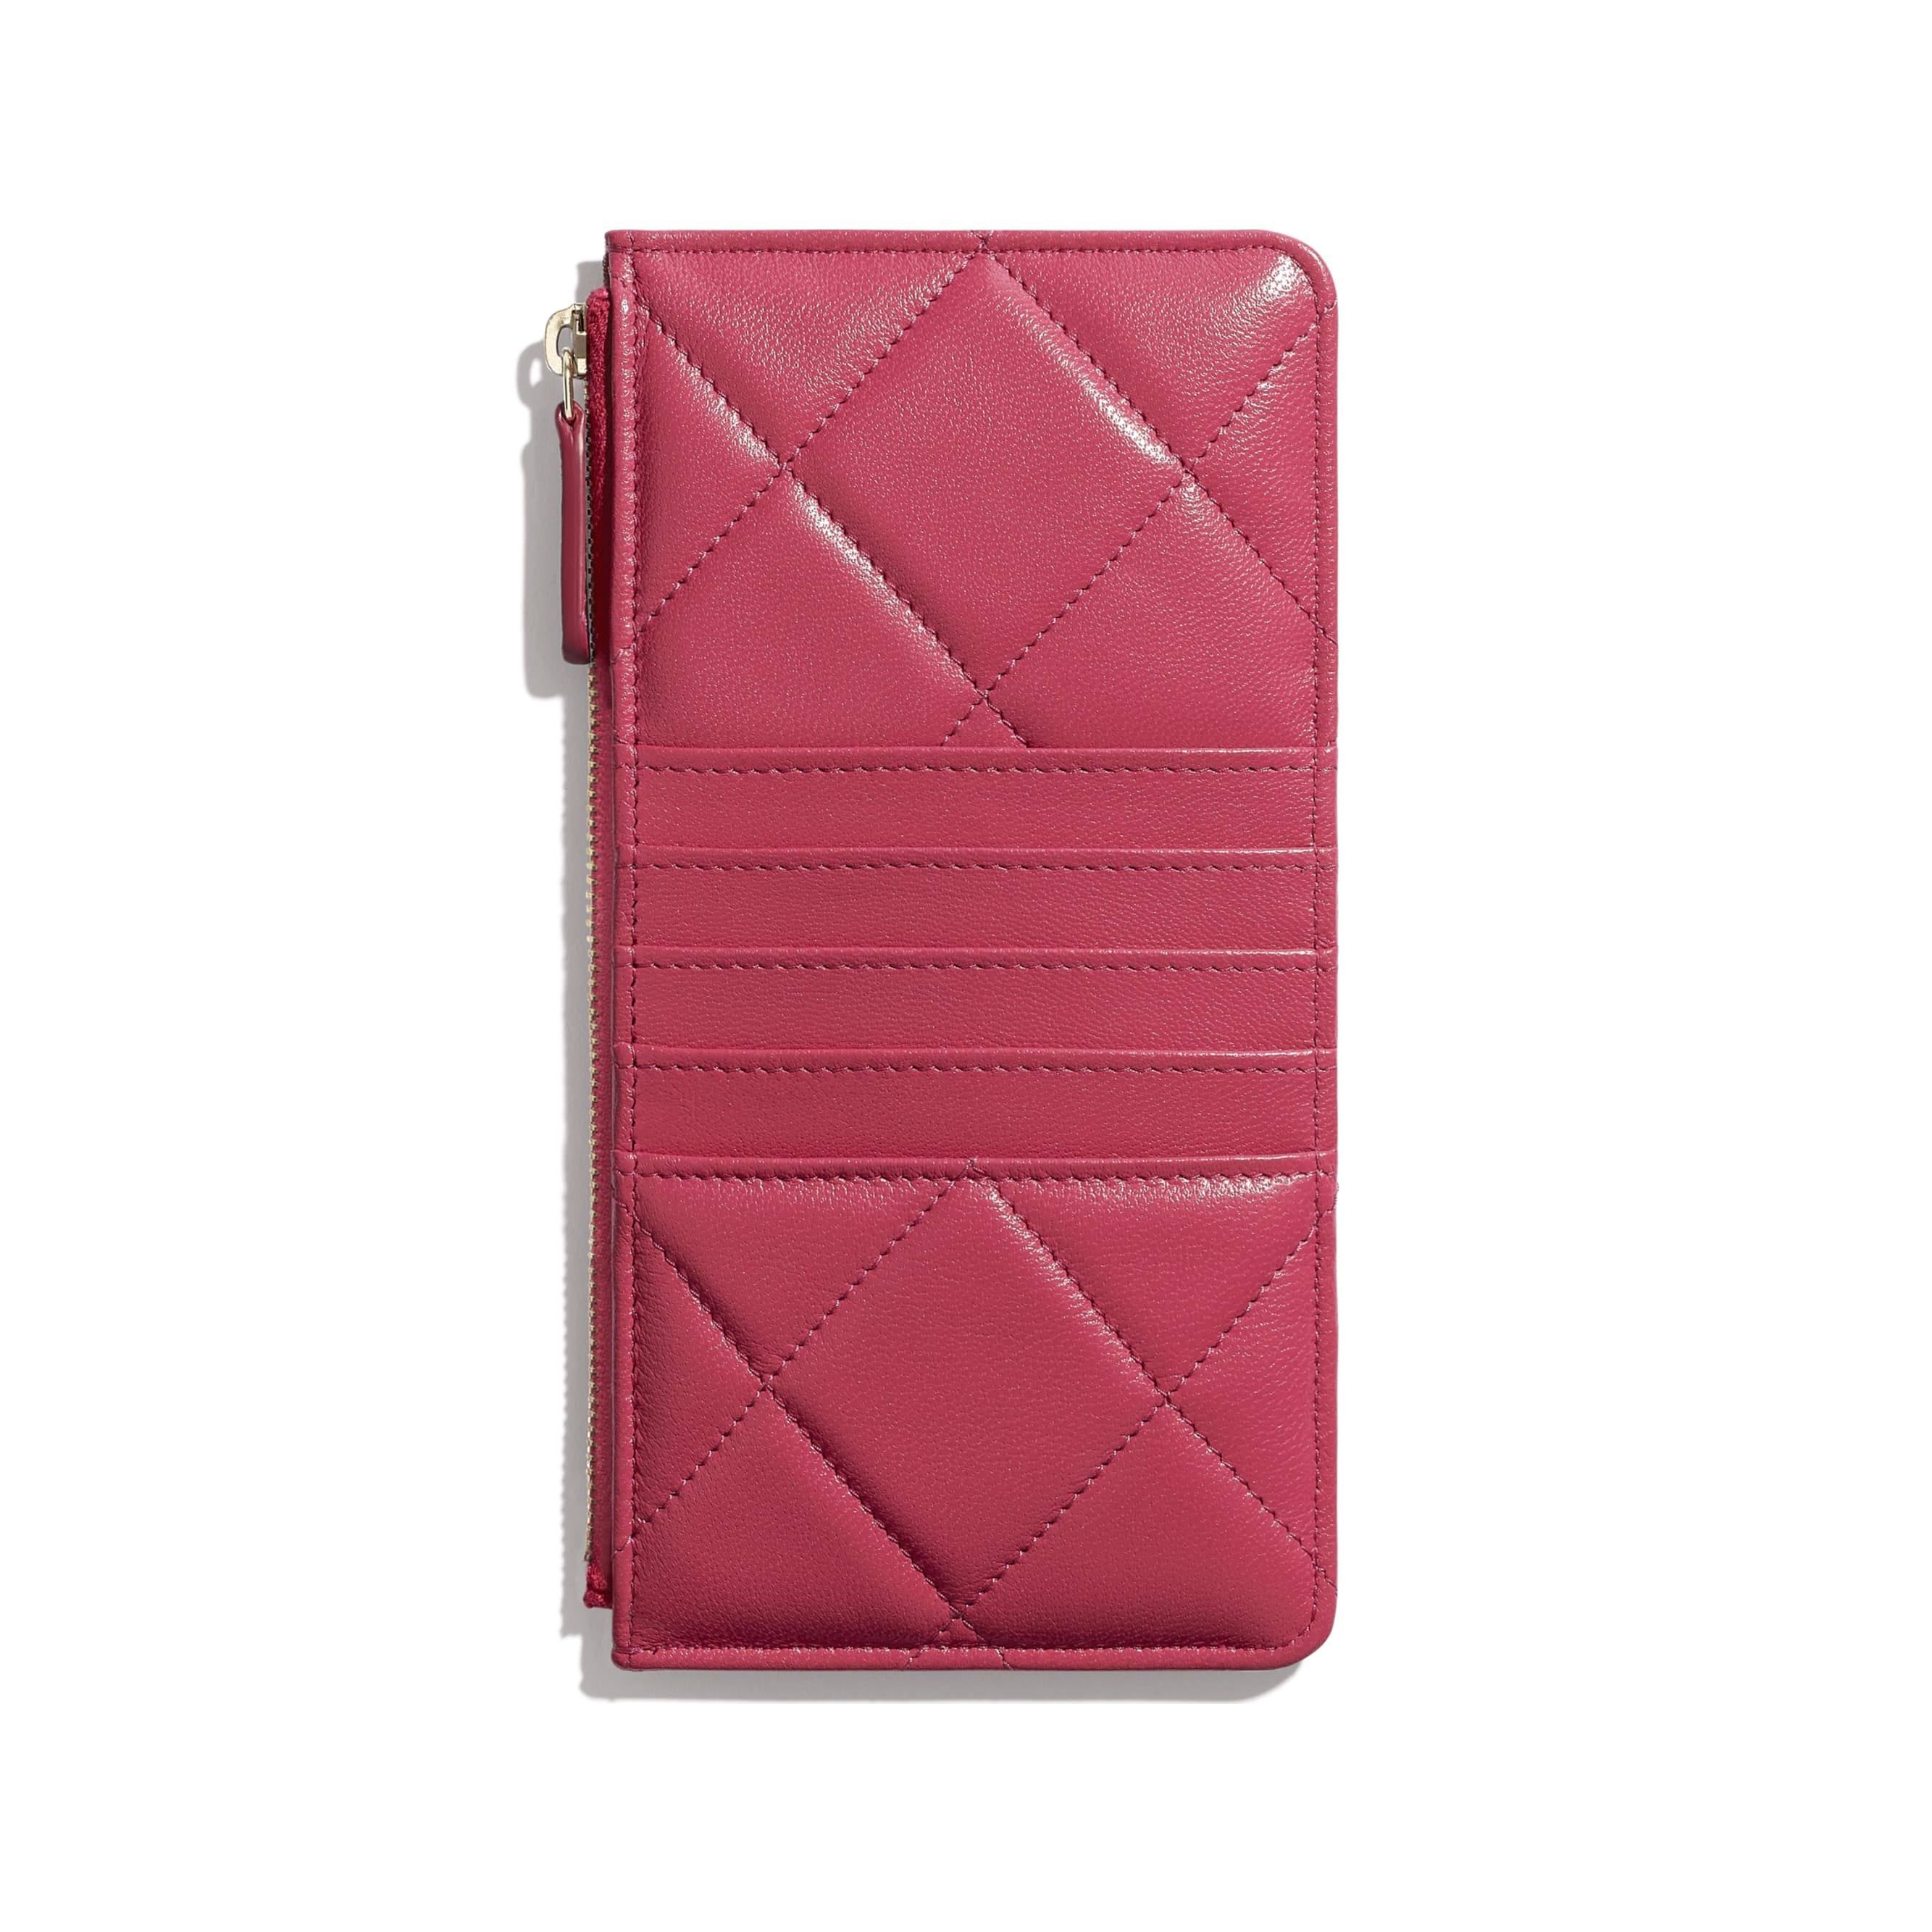 CHANEL 19 Phone & Card Holder - Dark Pink - Lambskin, Gold-Tone, Silver-Tone & Ruthenium-Finish Metal - CHANEL - Alternative view - see standard sized version